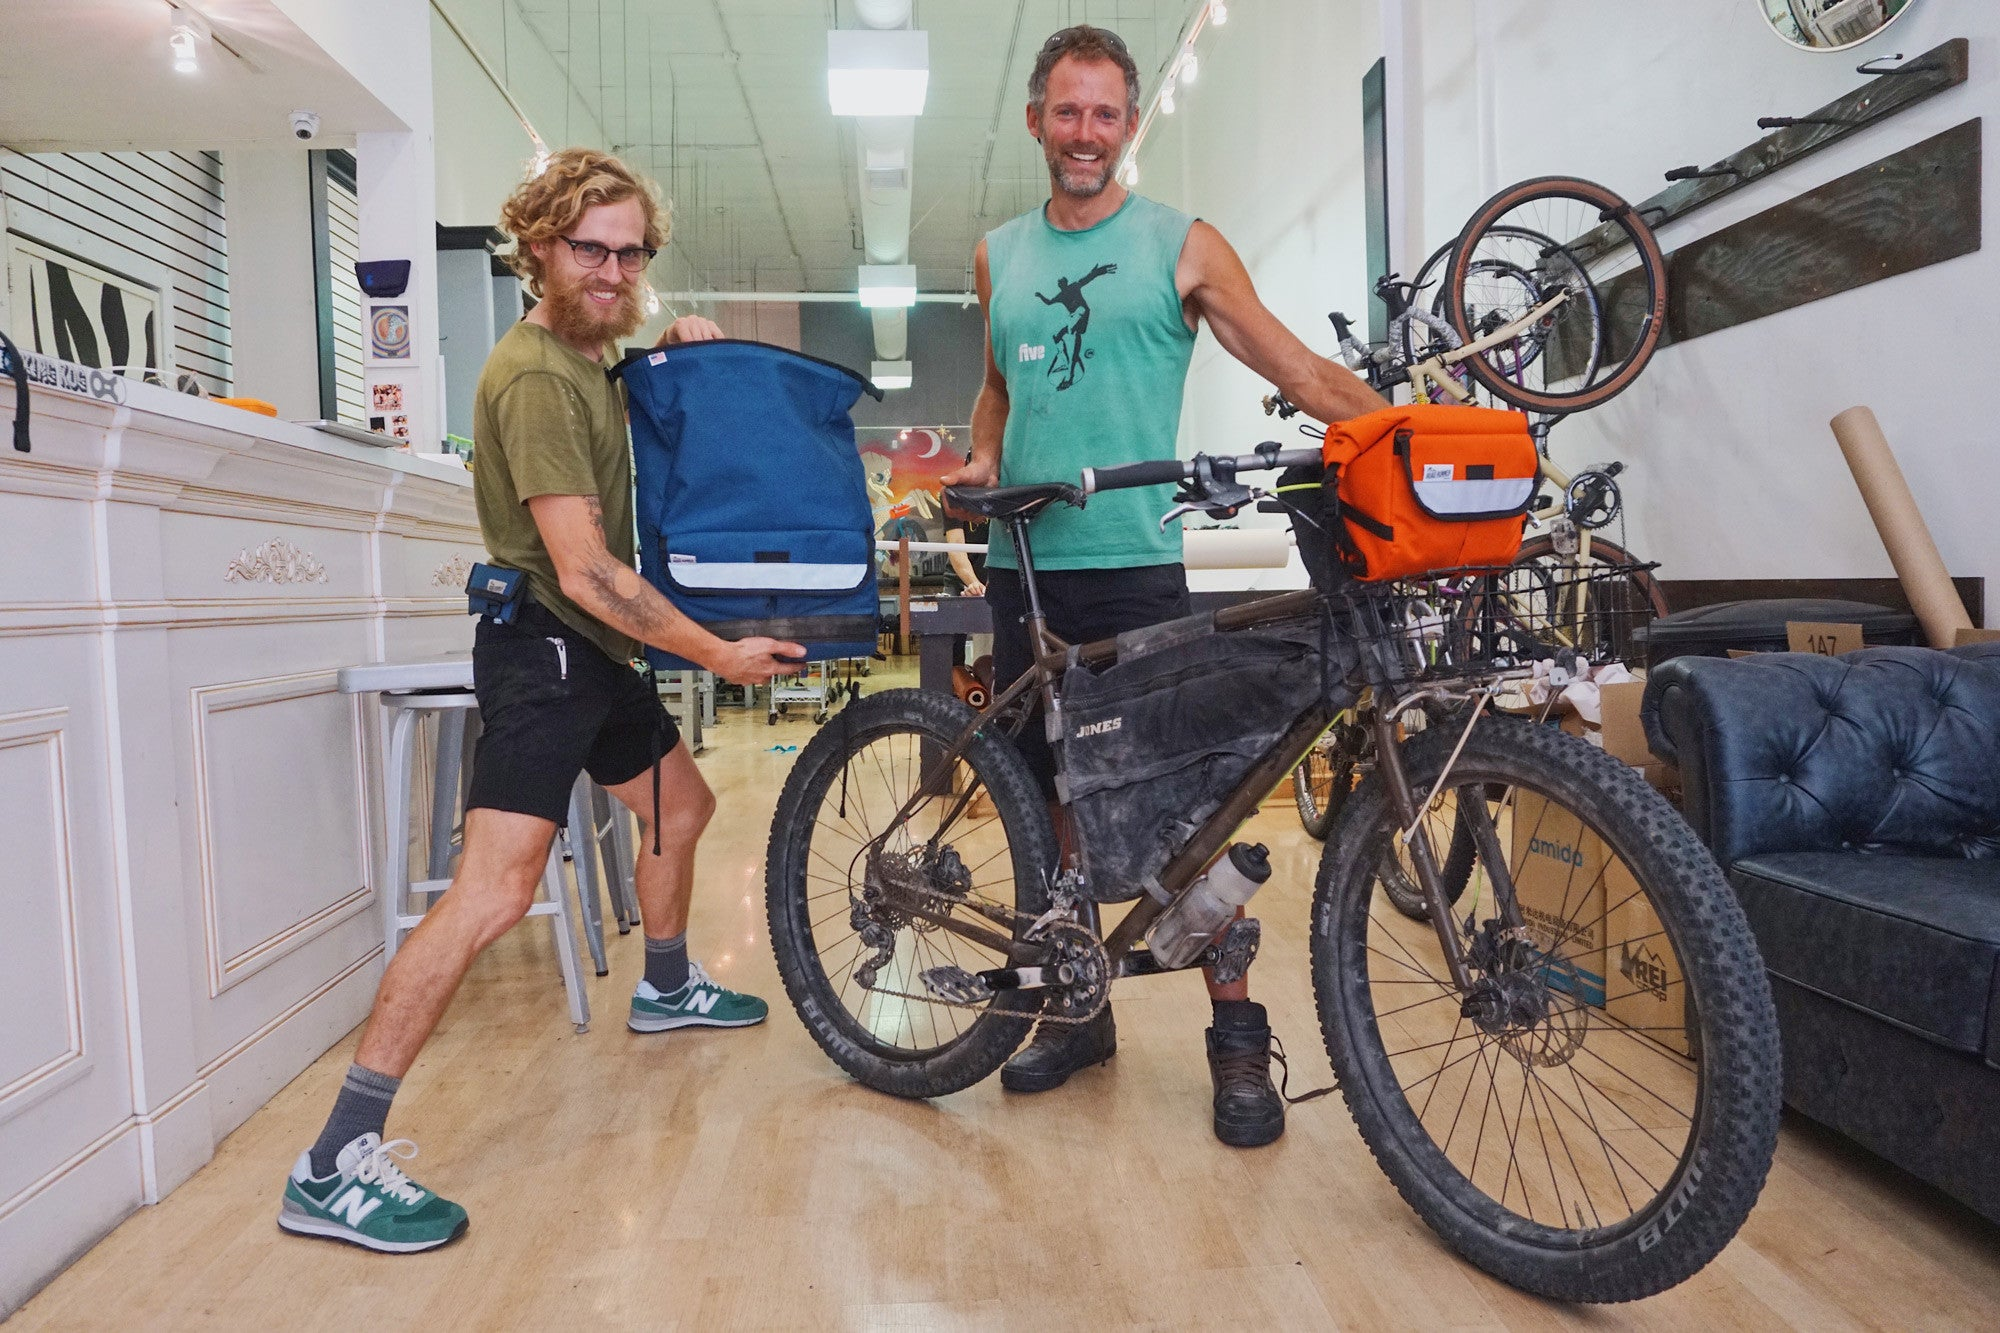 Cass from Bikepacking dot com in the hizz house!